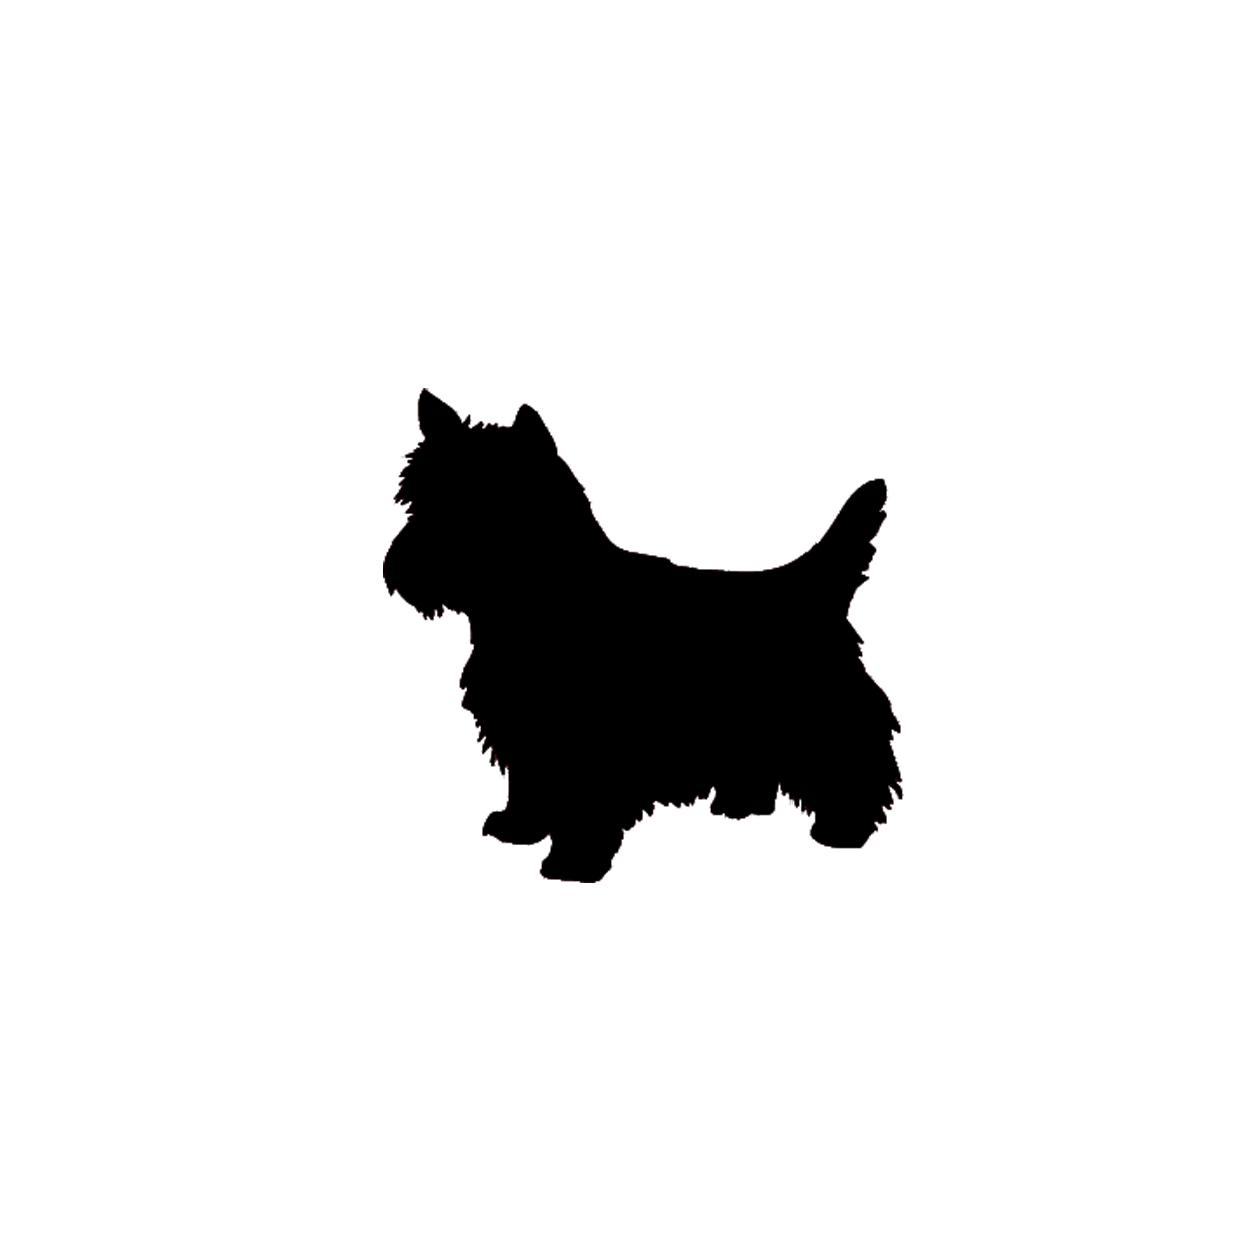 Dog silhouette clip art black and white picture royalty free library yorkie dog silhouette | doggie | Pinterest | Clip art, Search and ... picture royalty free library